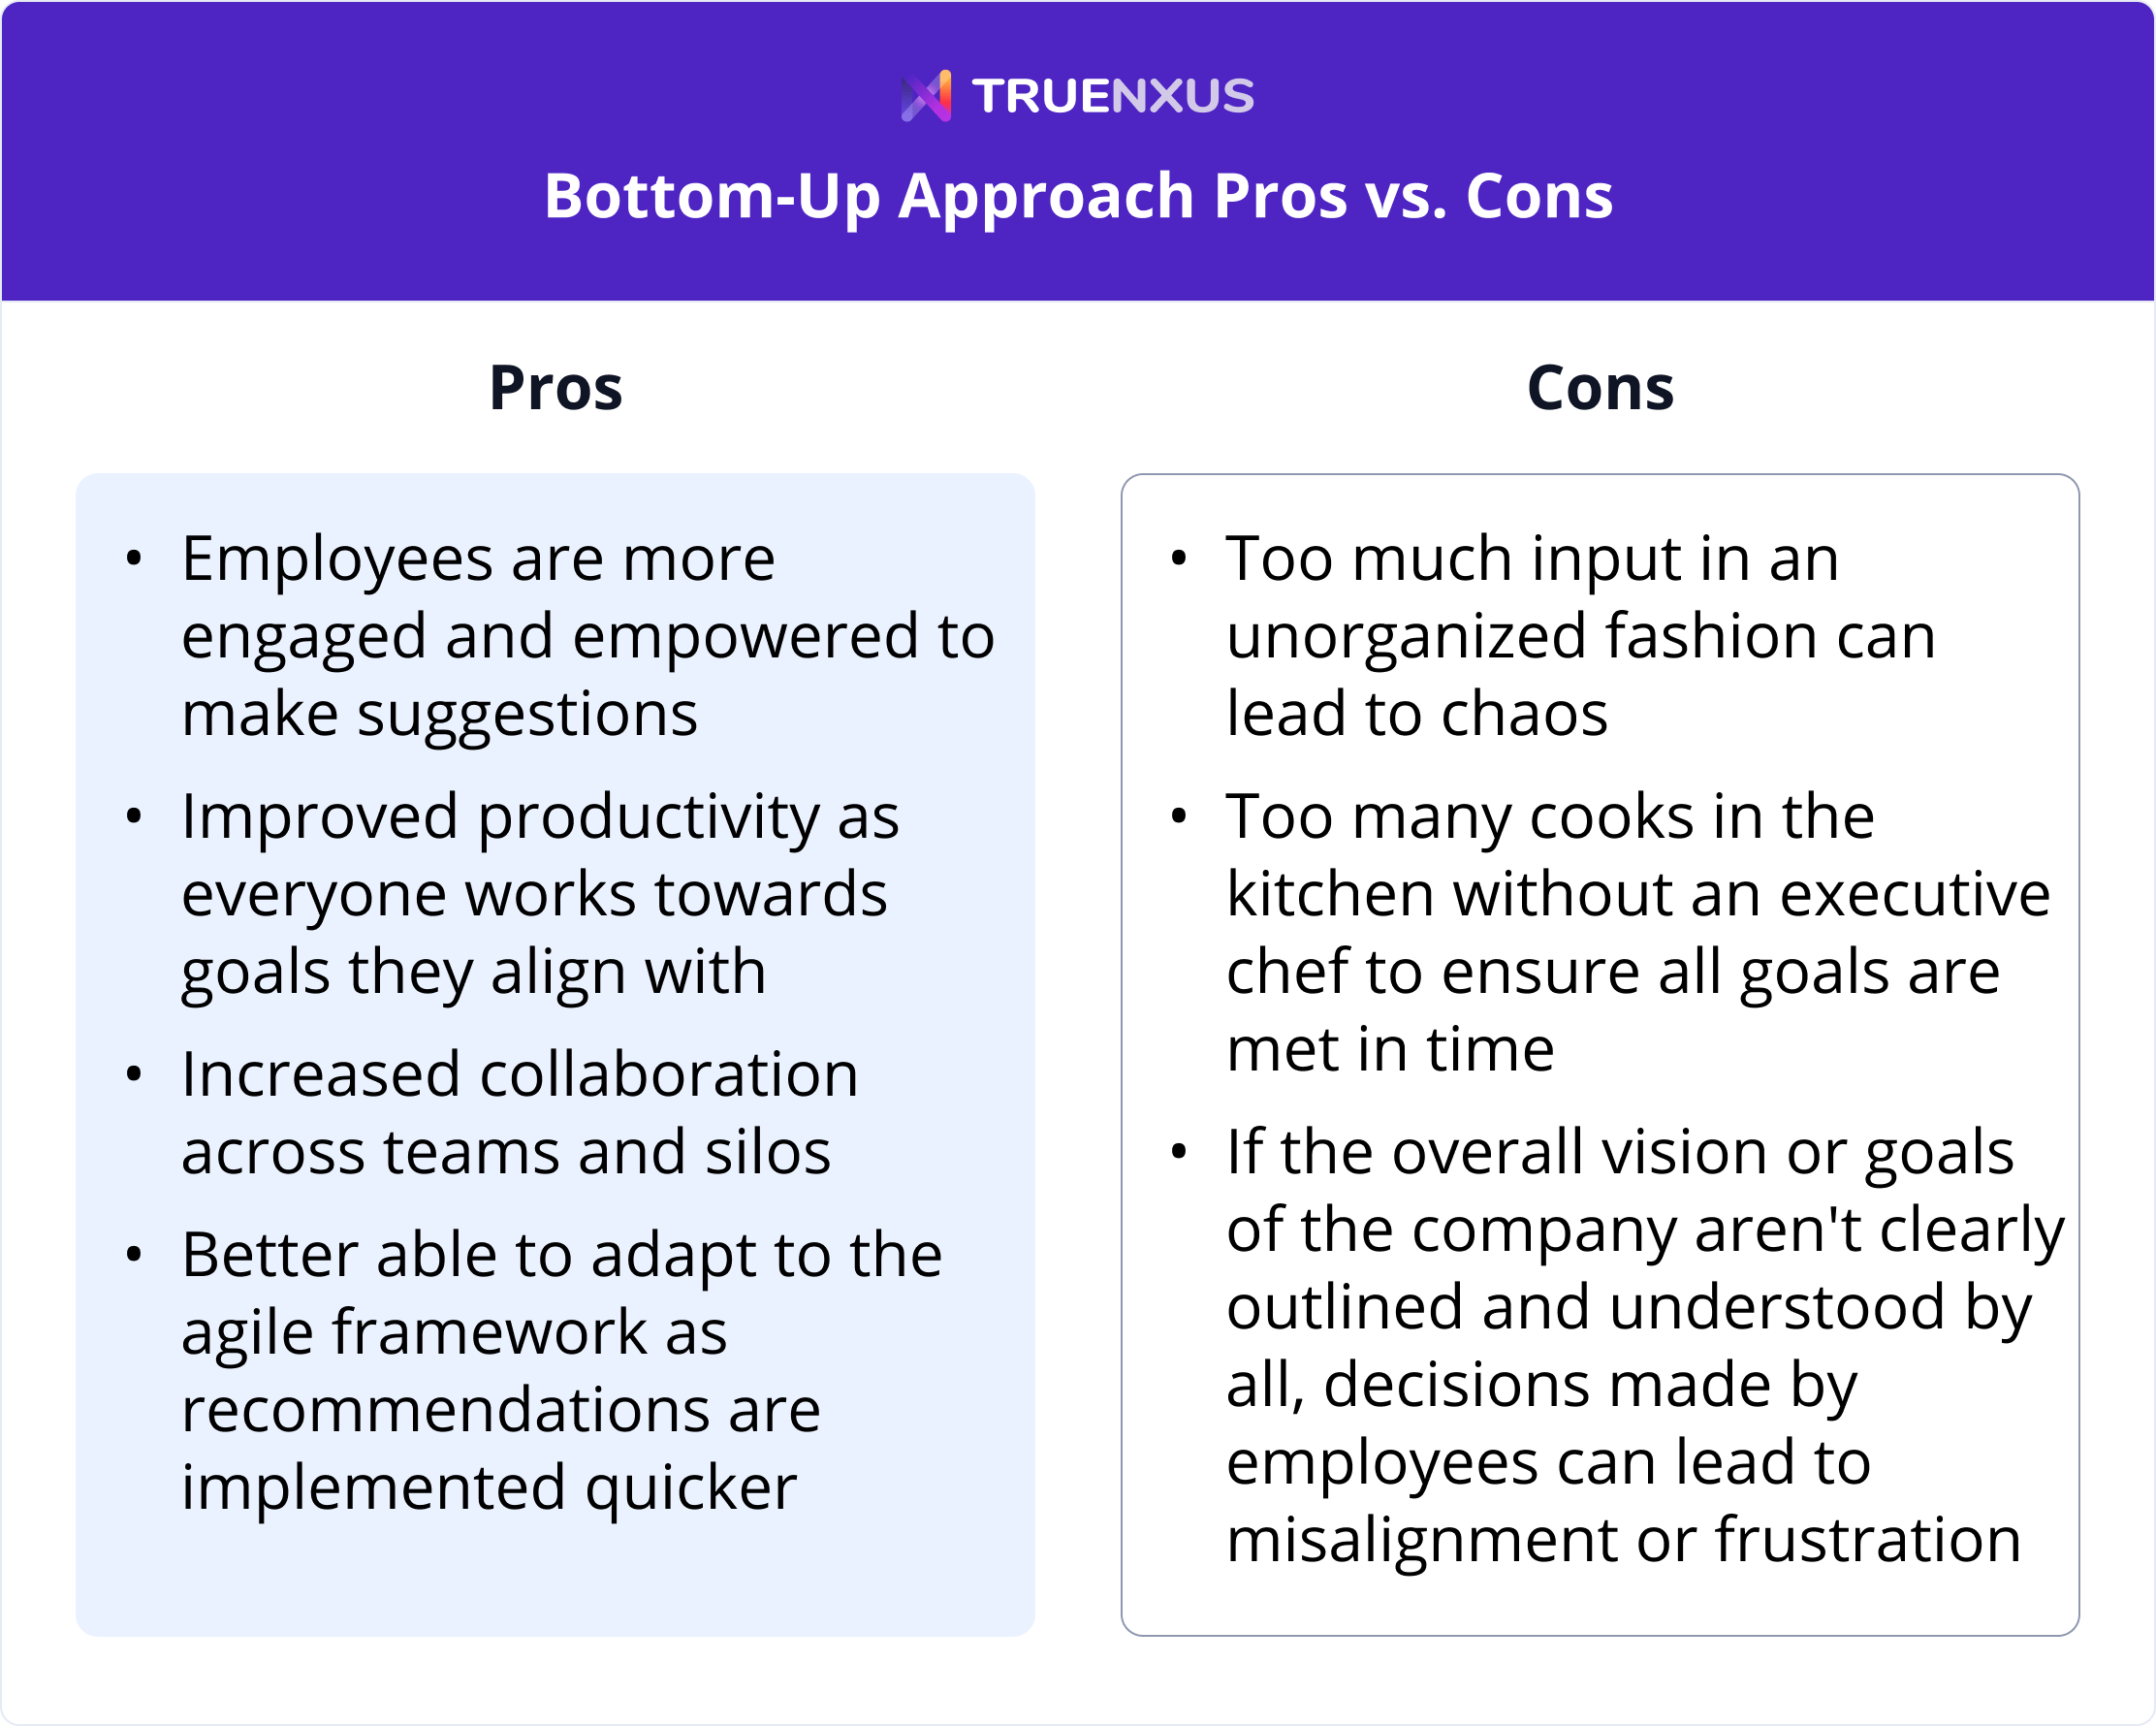 Bottom-up approach pros vs. cons